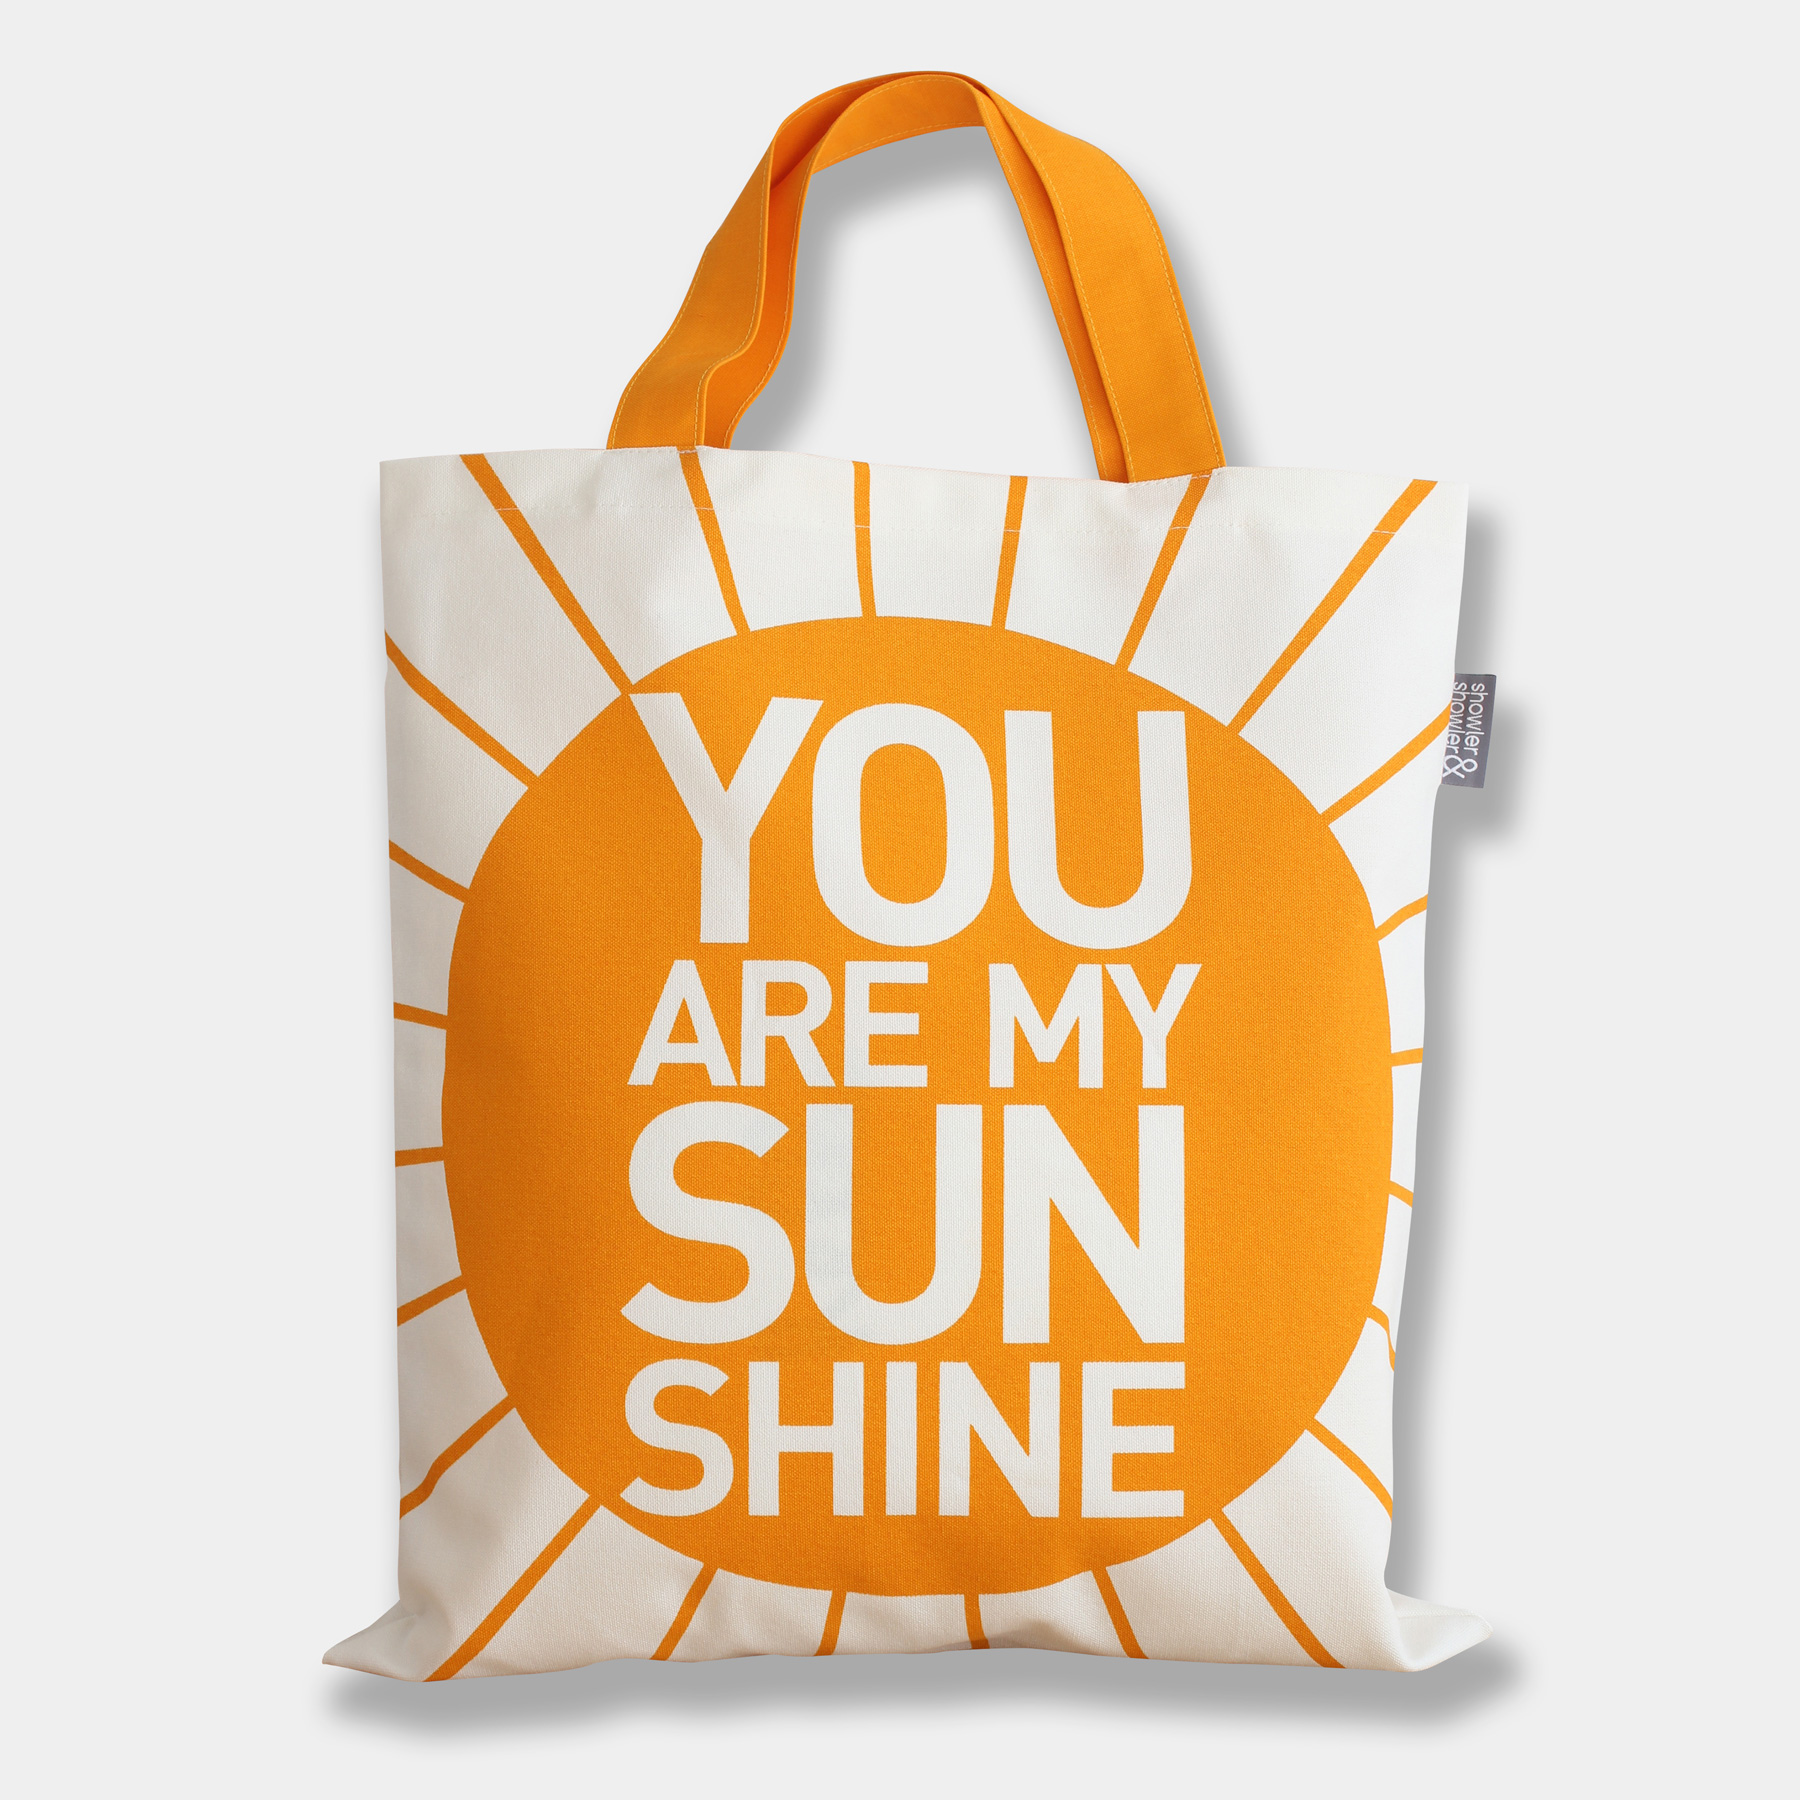 You-Are-My-Sunshine-Bag.jpg